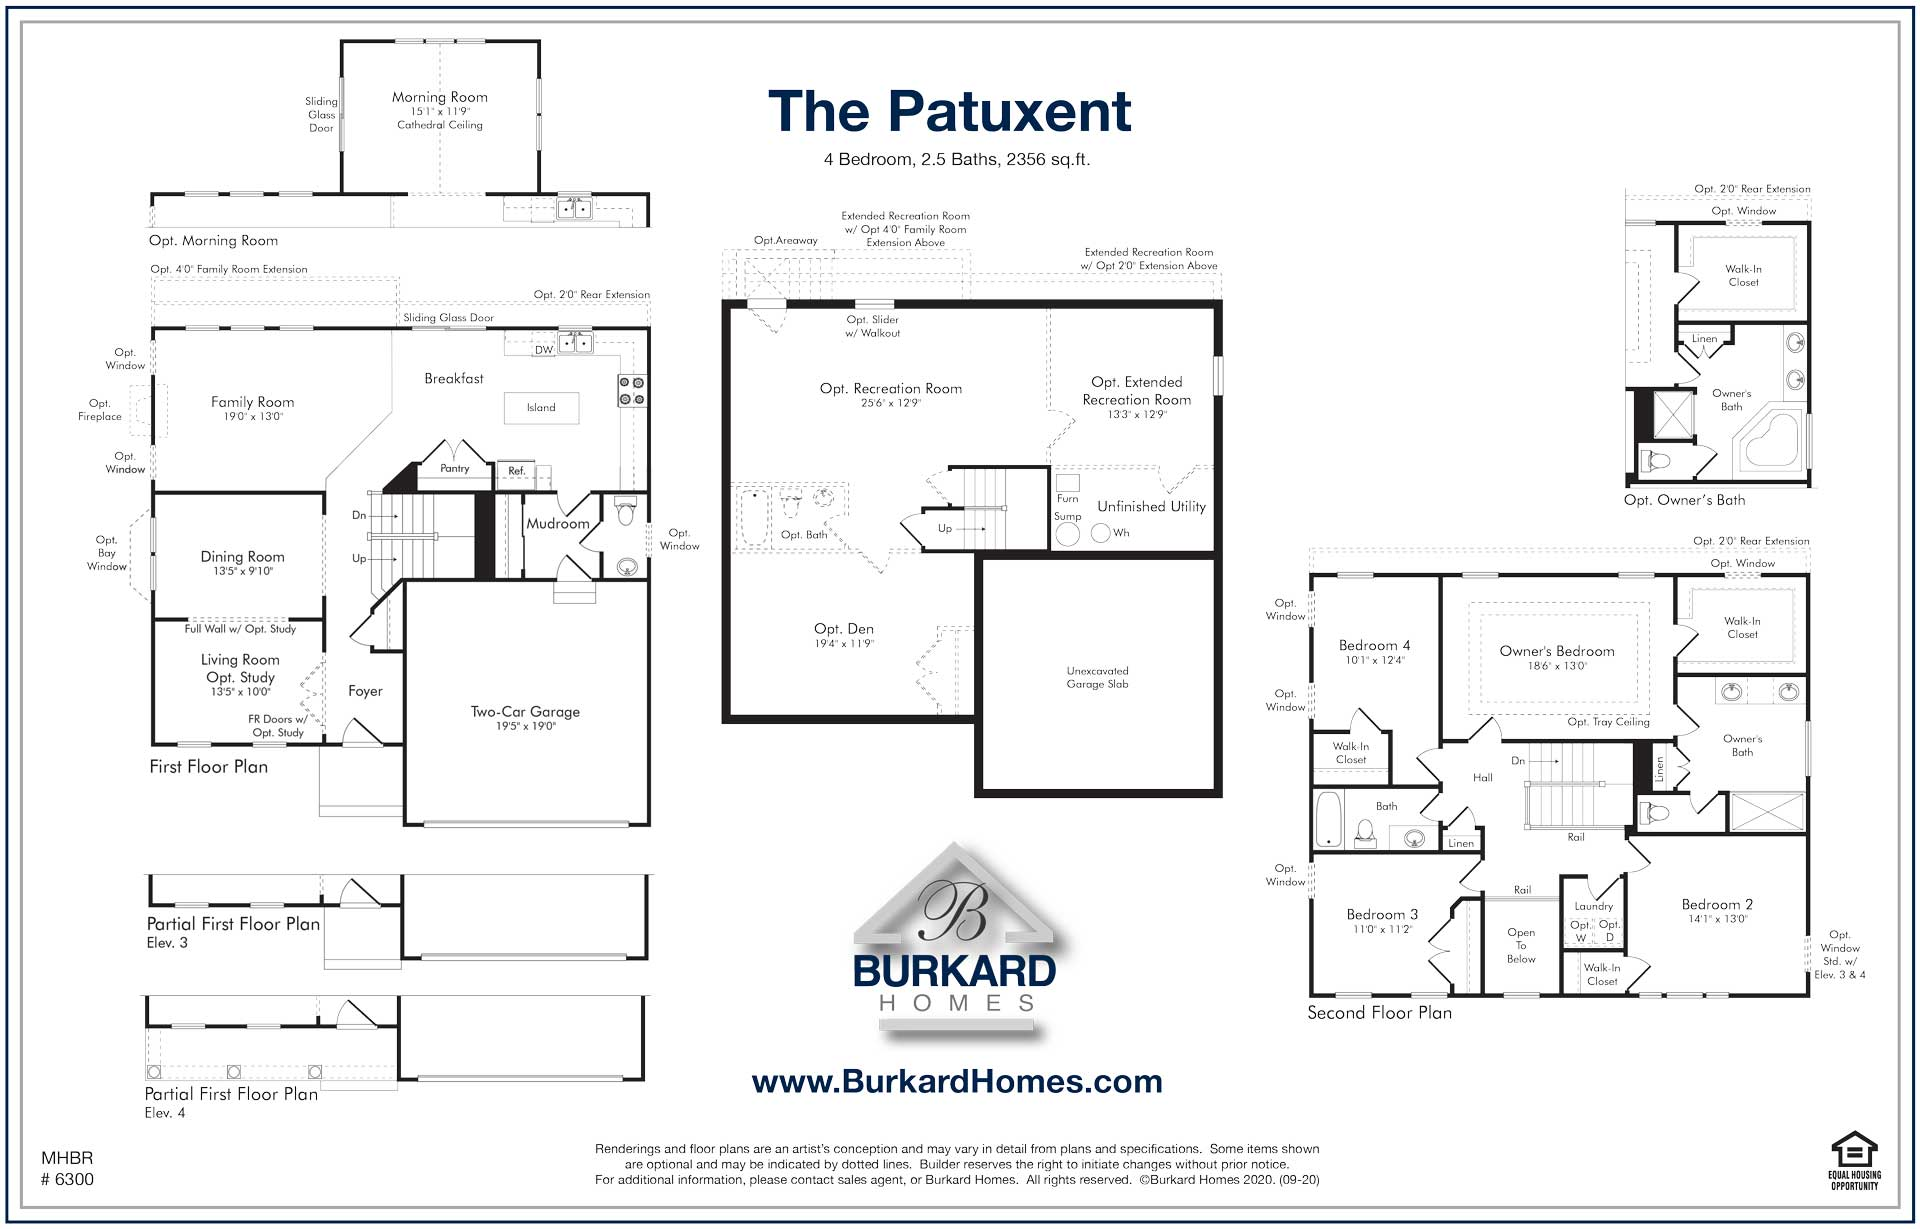 Burkard Homes Patuxent Floor Plan